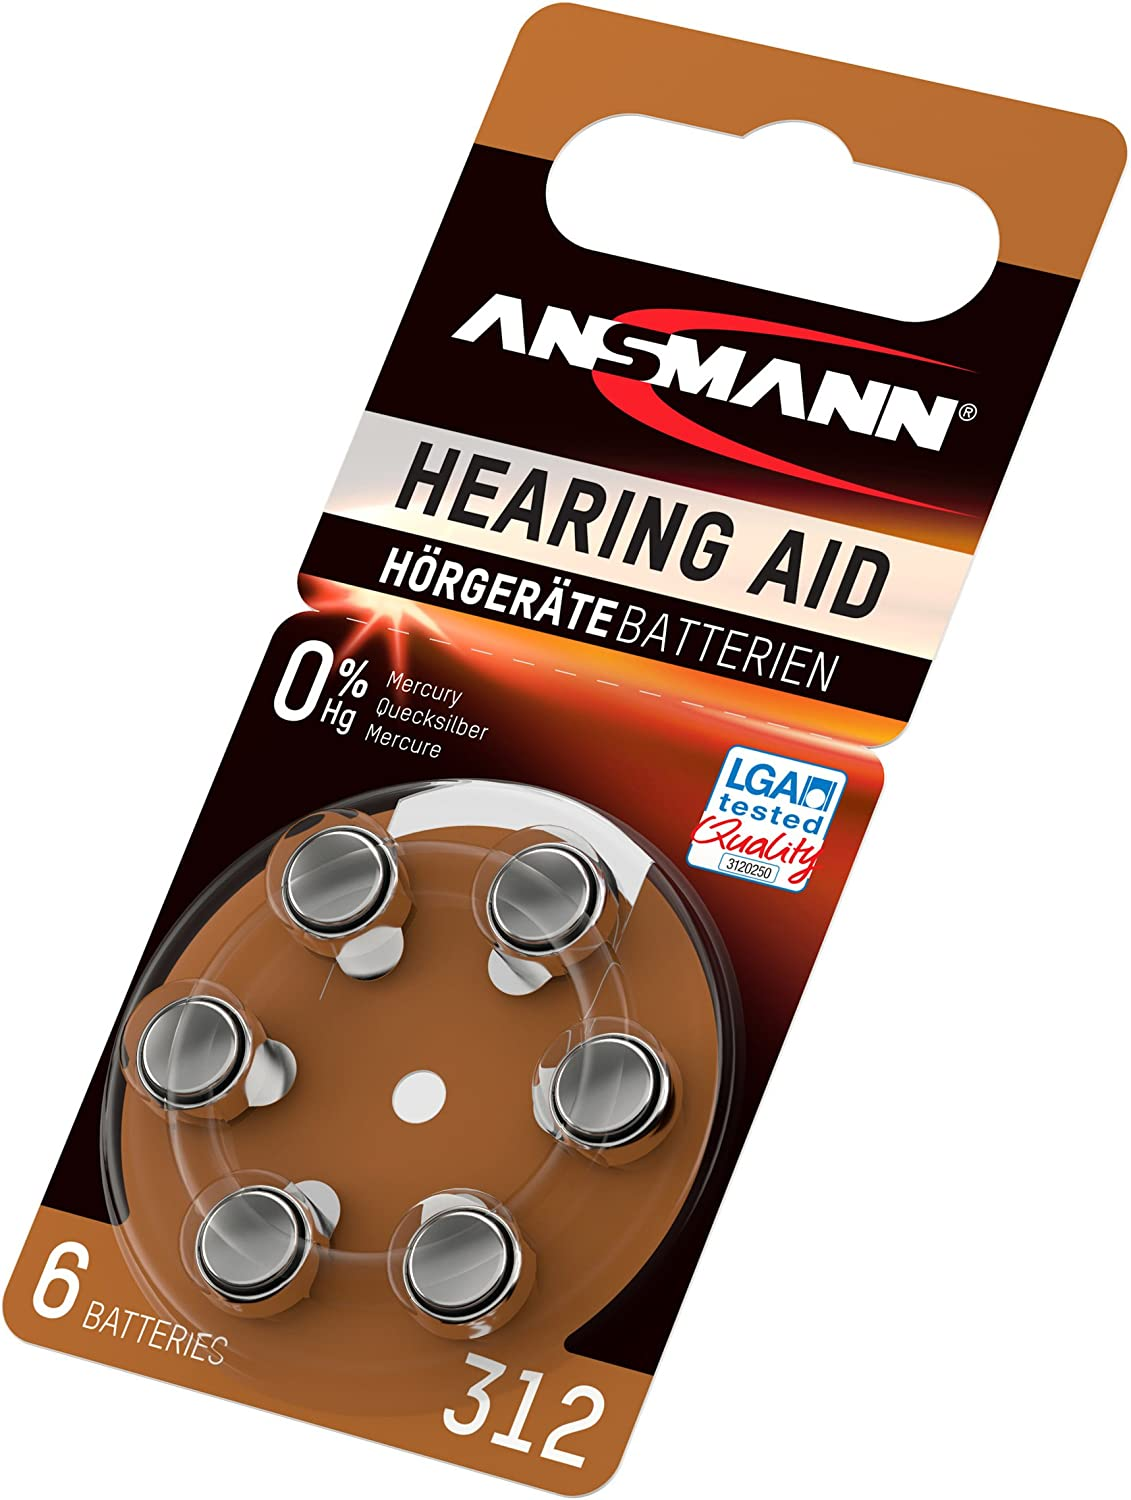 ANSMANN Hearing Aid Battery Size 13 1.4V Zinc-Air 6 Pack